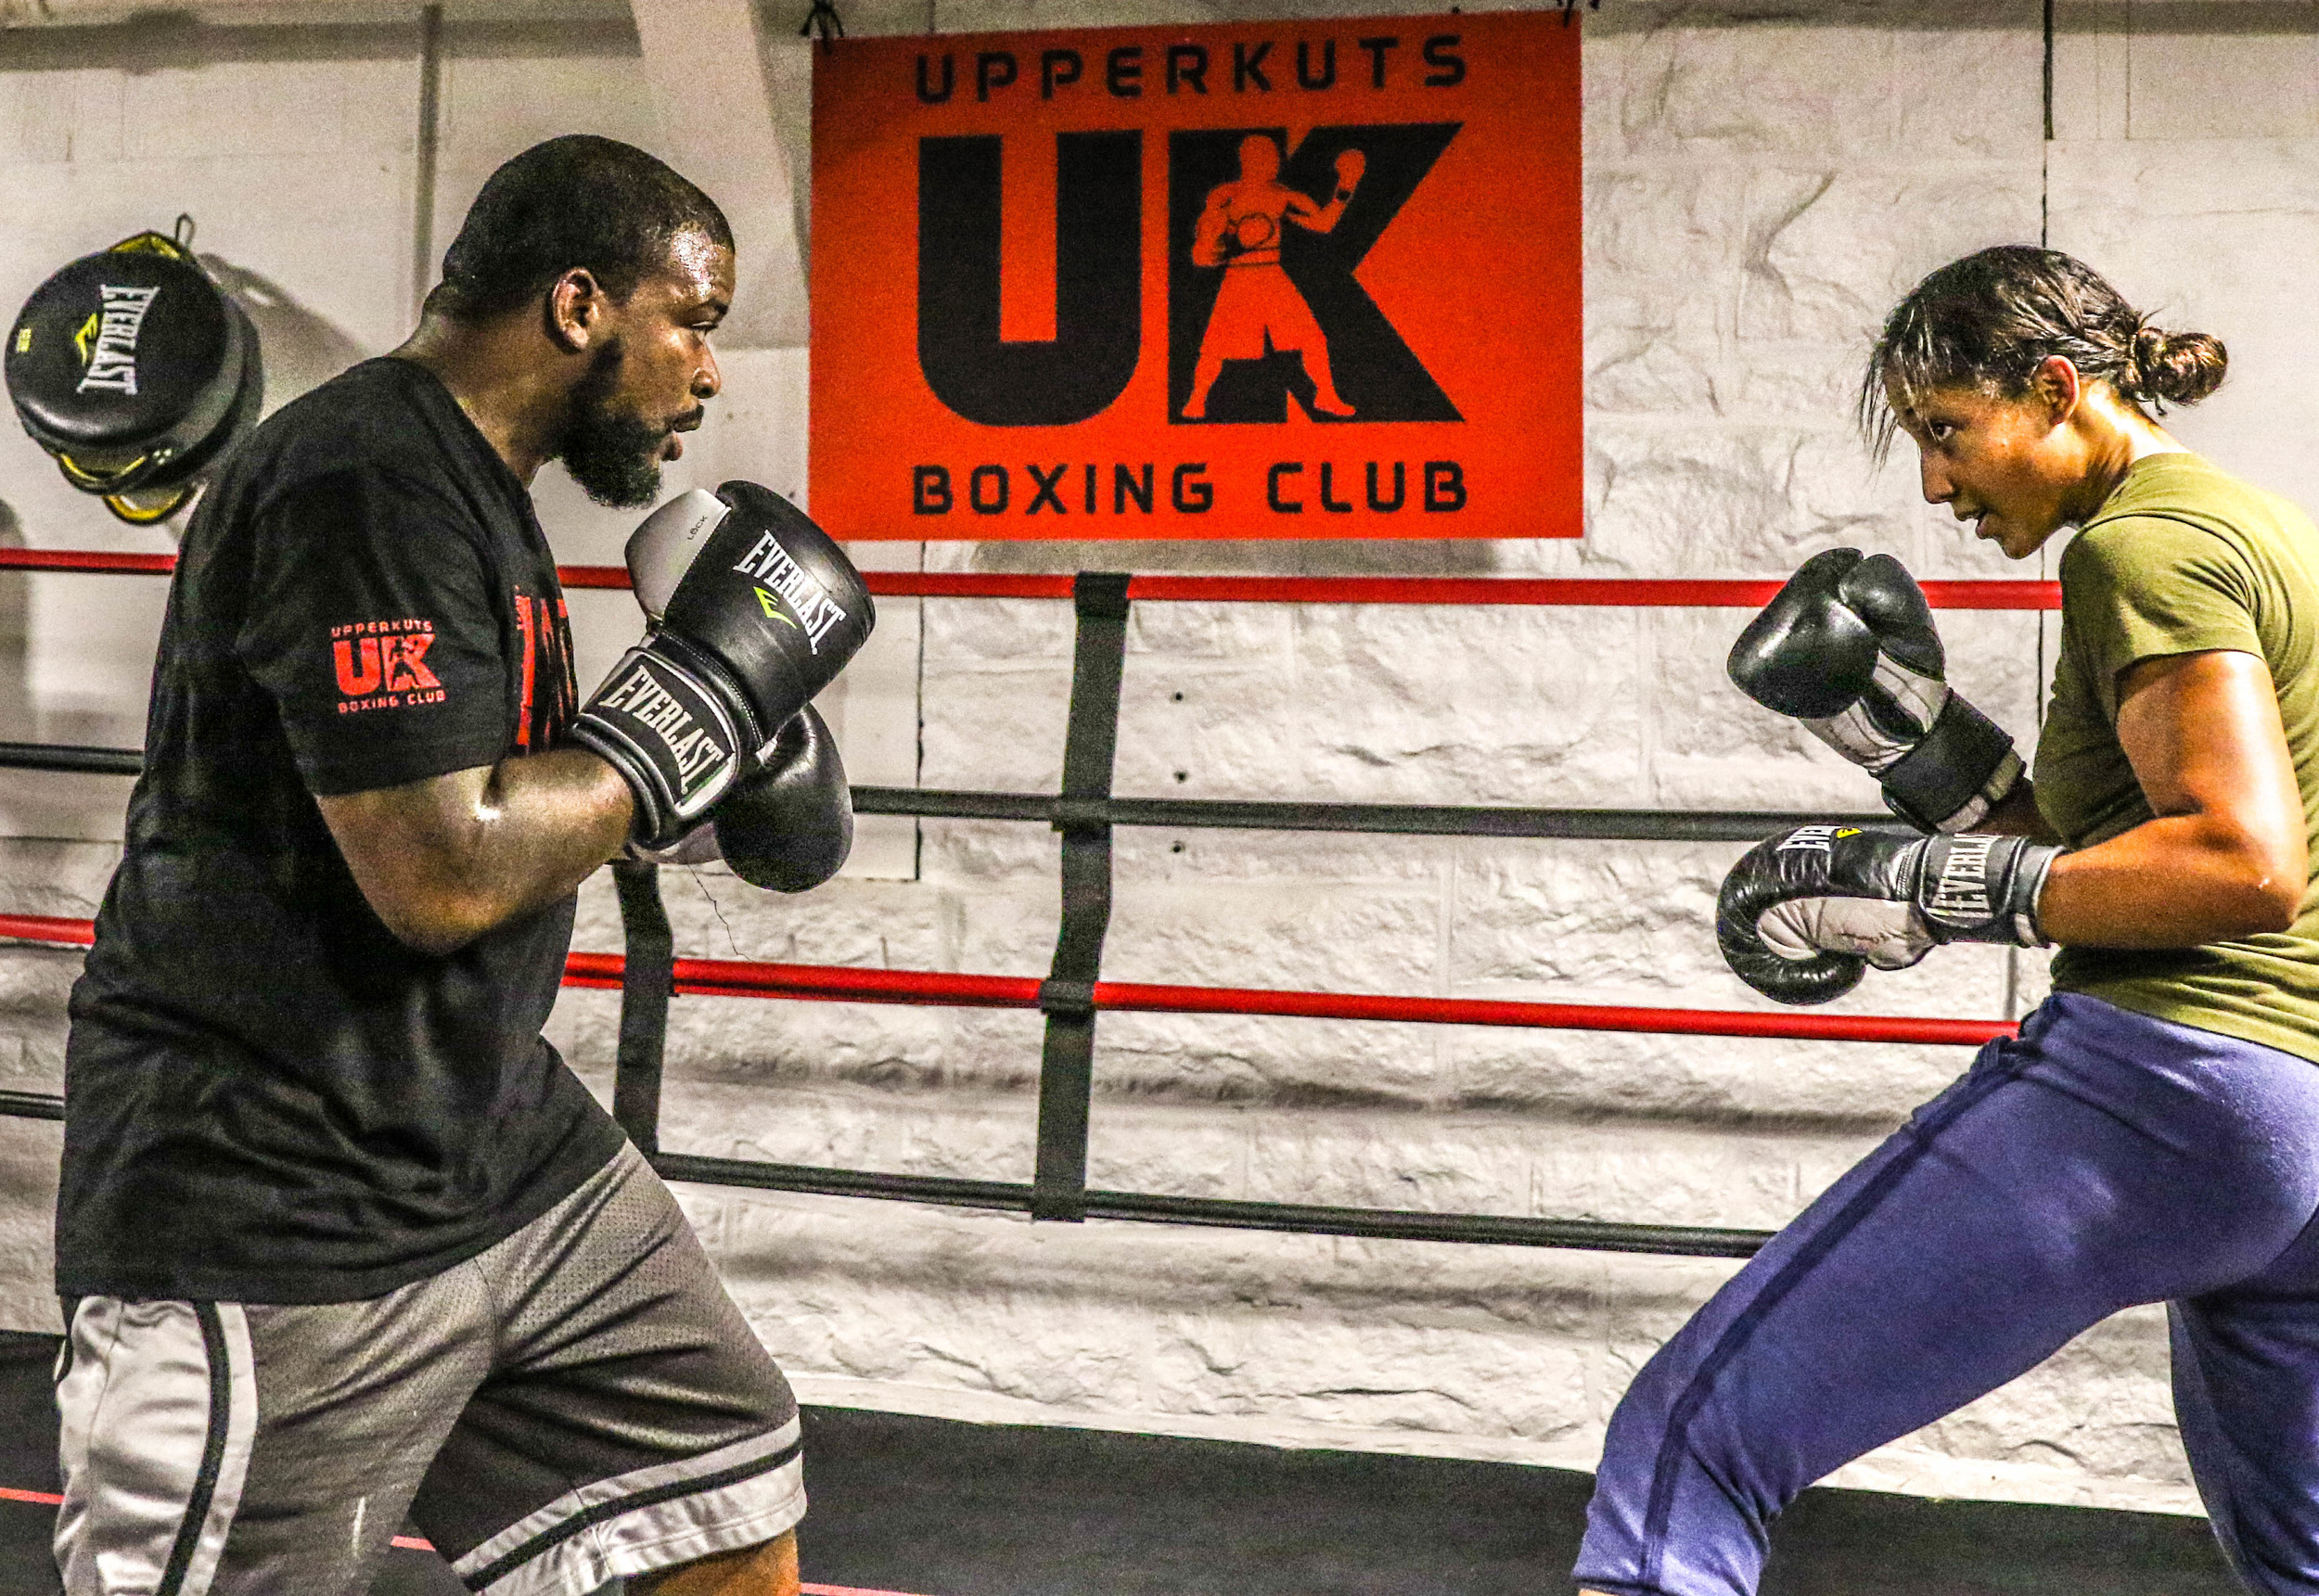 Jai training with UpperKuts Boxing coach, AJ Thomas.